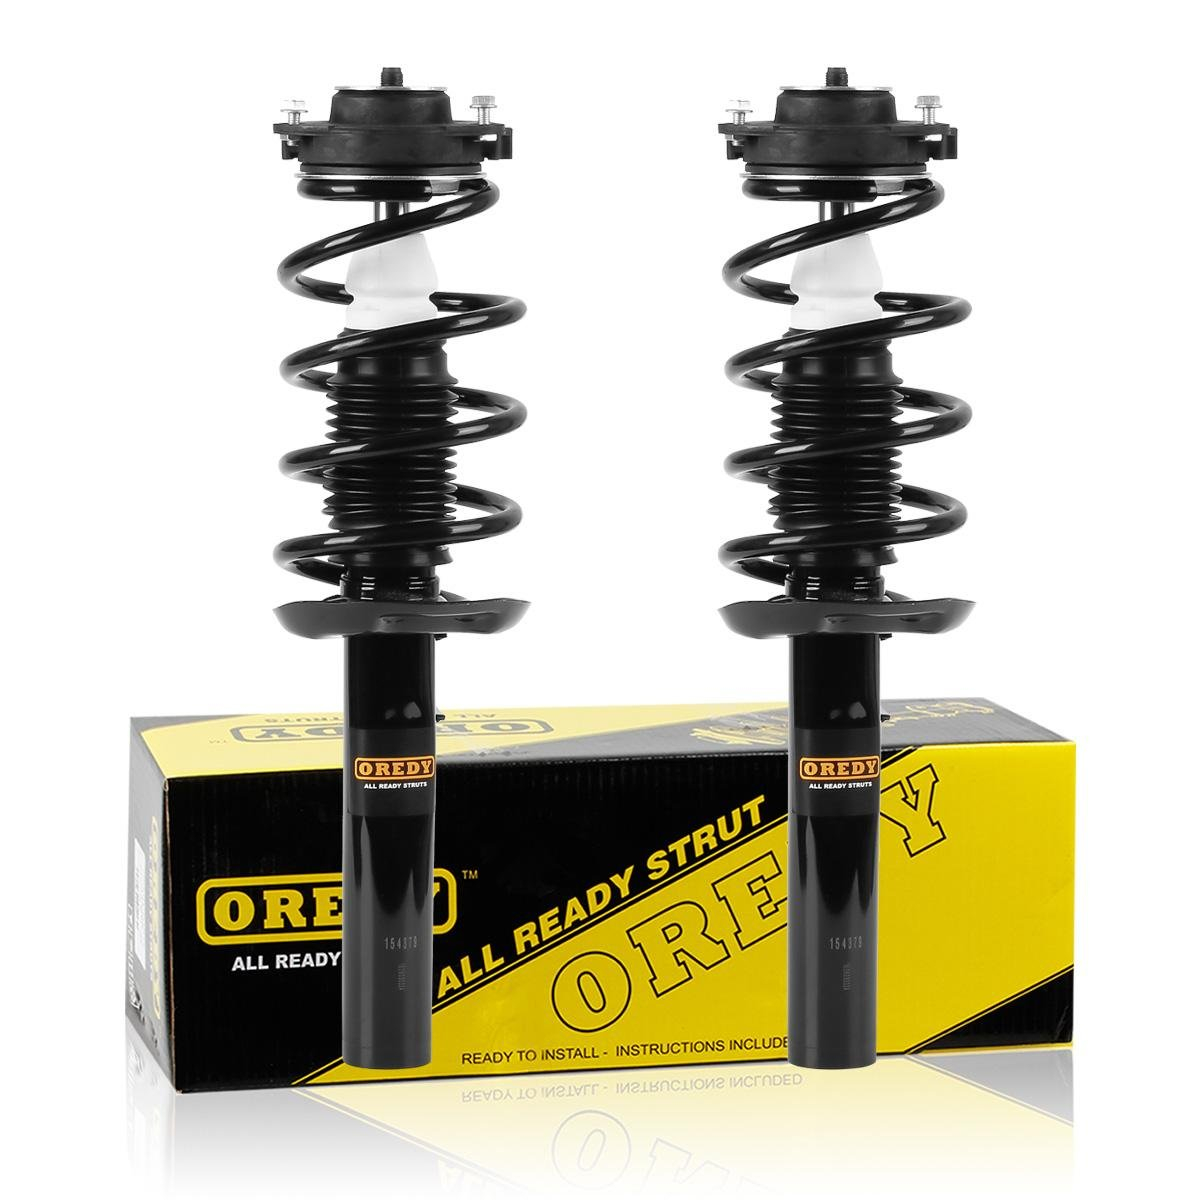 Amazon.com: OREDY Front Pair Complete Quick Struts Shock Coil Spring  Assembly Kit 172311 11060 Compatible with 2007 2008 2009 Volkswagen Jetta  Passat Gti ...